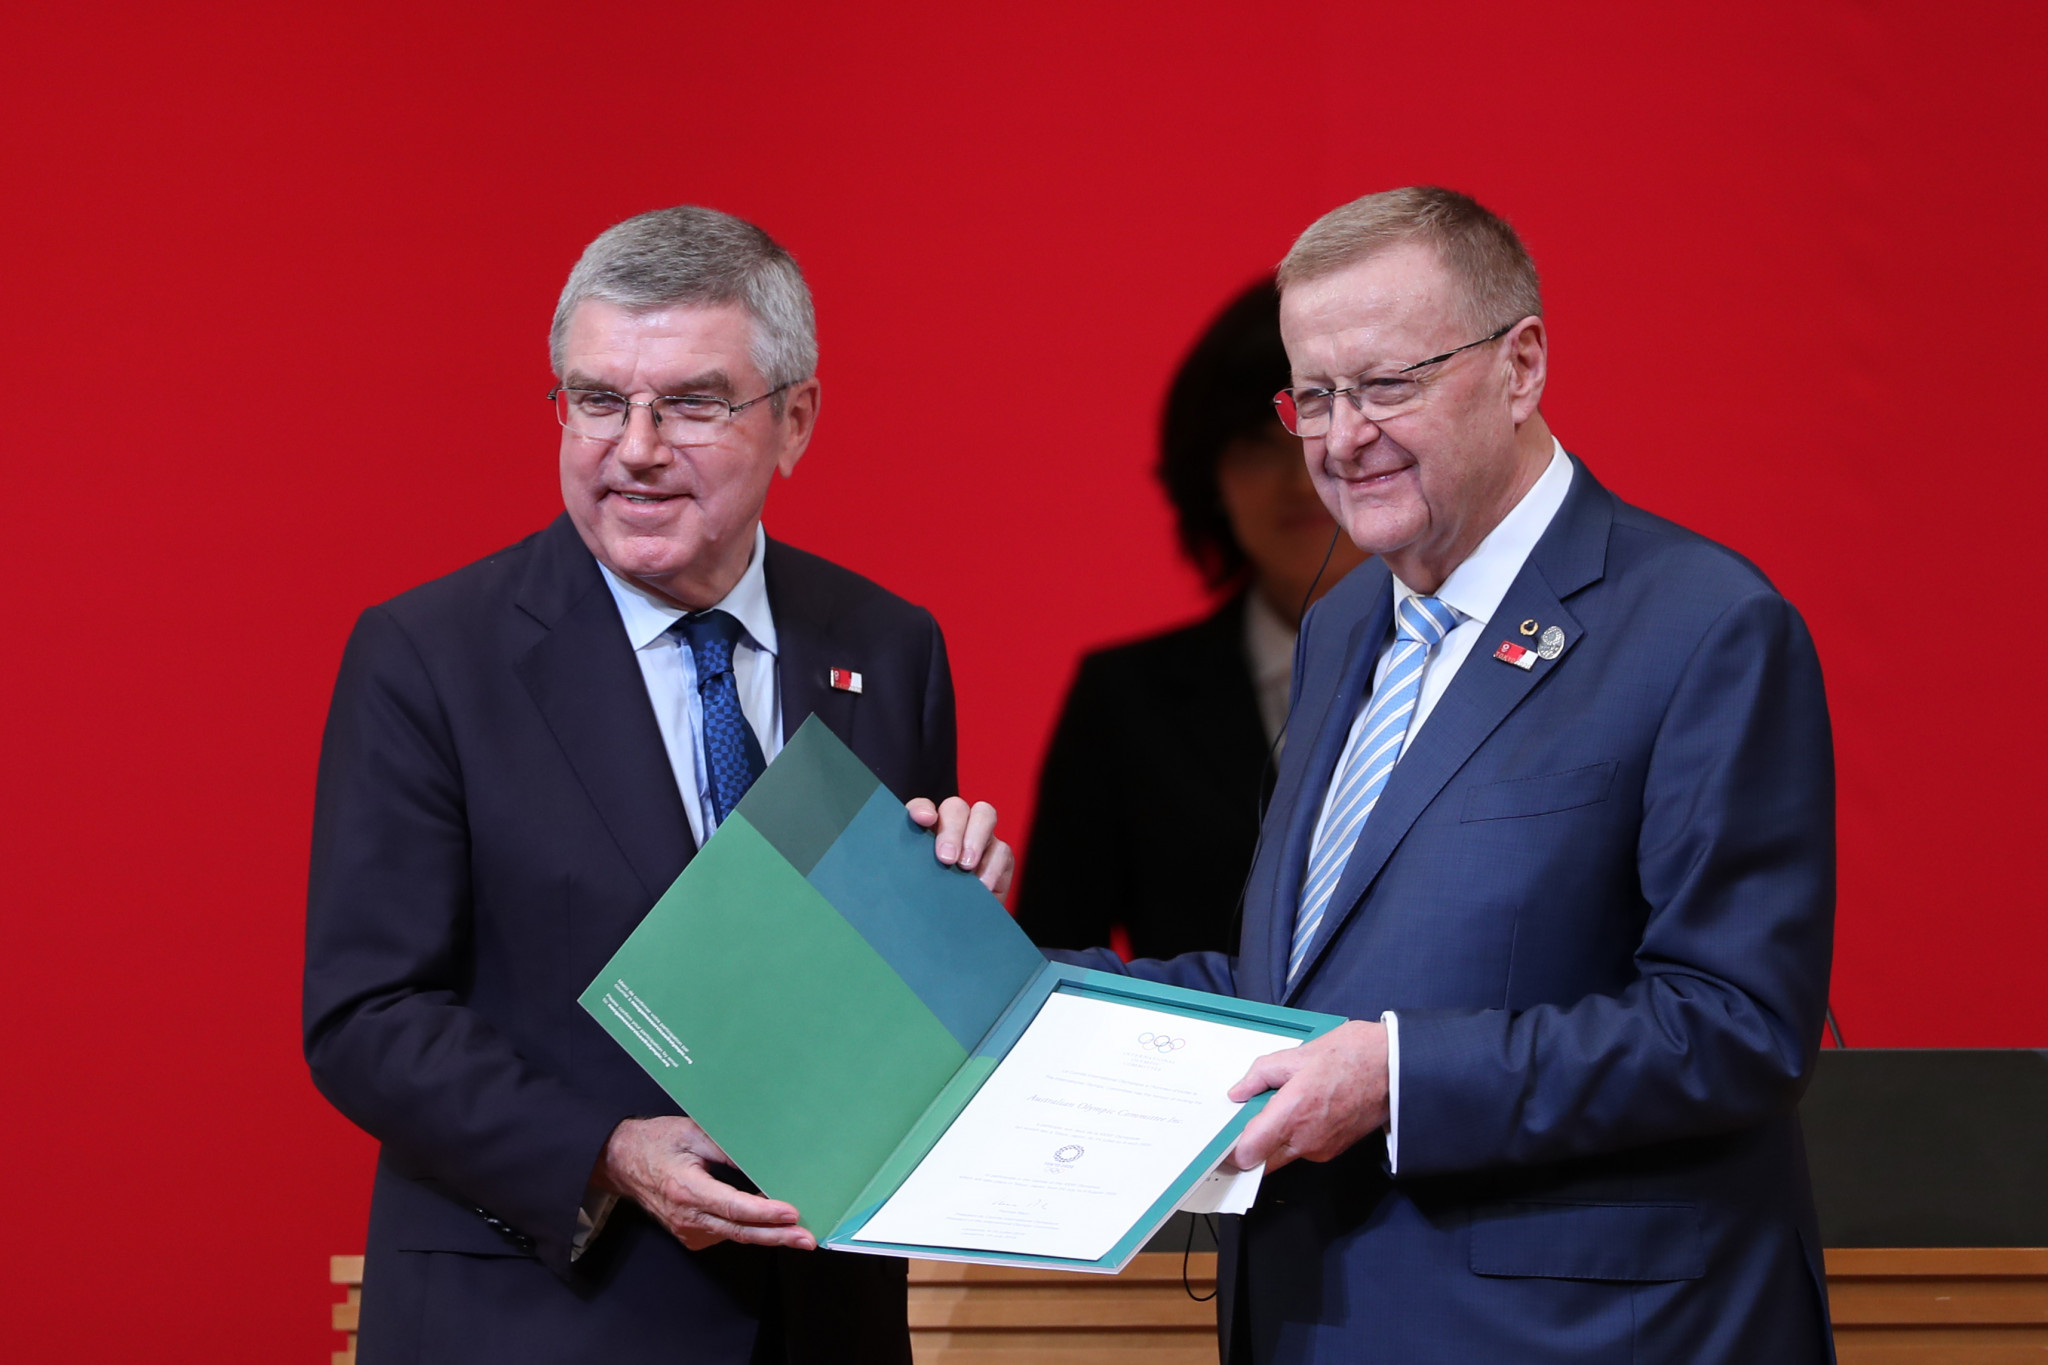 IOC President Thomas Bach has consistently praised Queensland's potential bid ©Getty Images